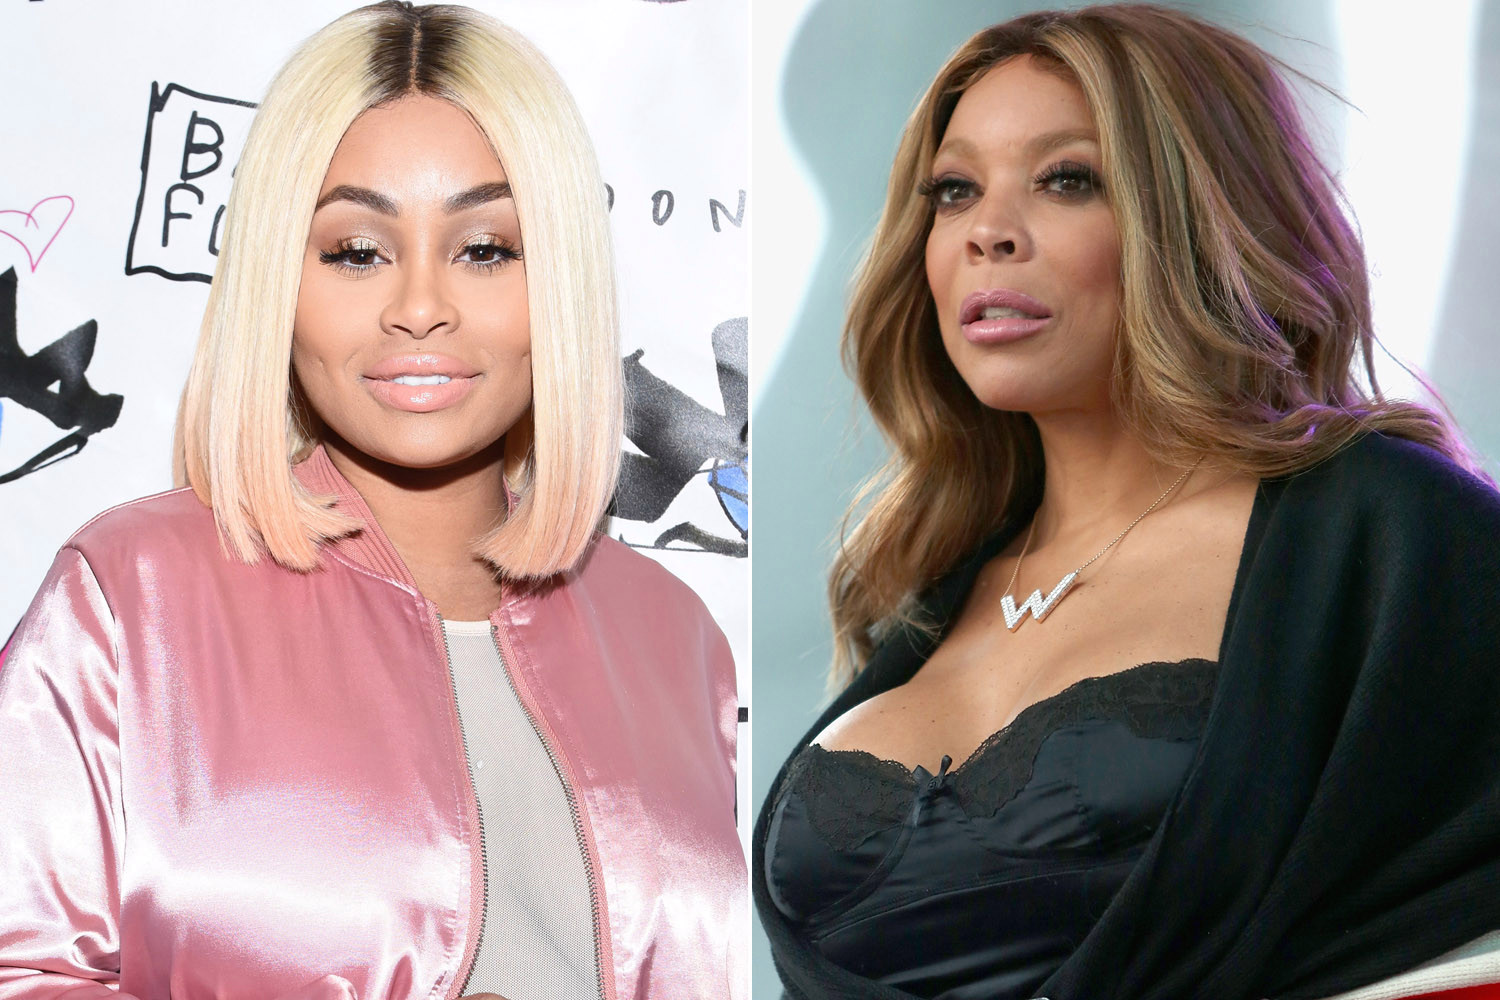 """blac-chyna-will-spill-all-the-tea-on-wendy-williams-show-today-fans-give-her-precious-advice"""